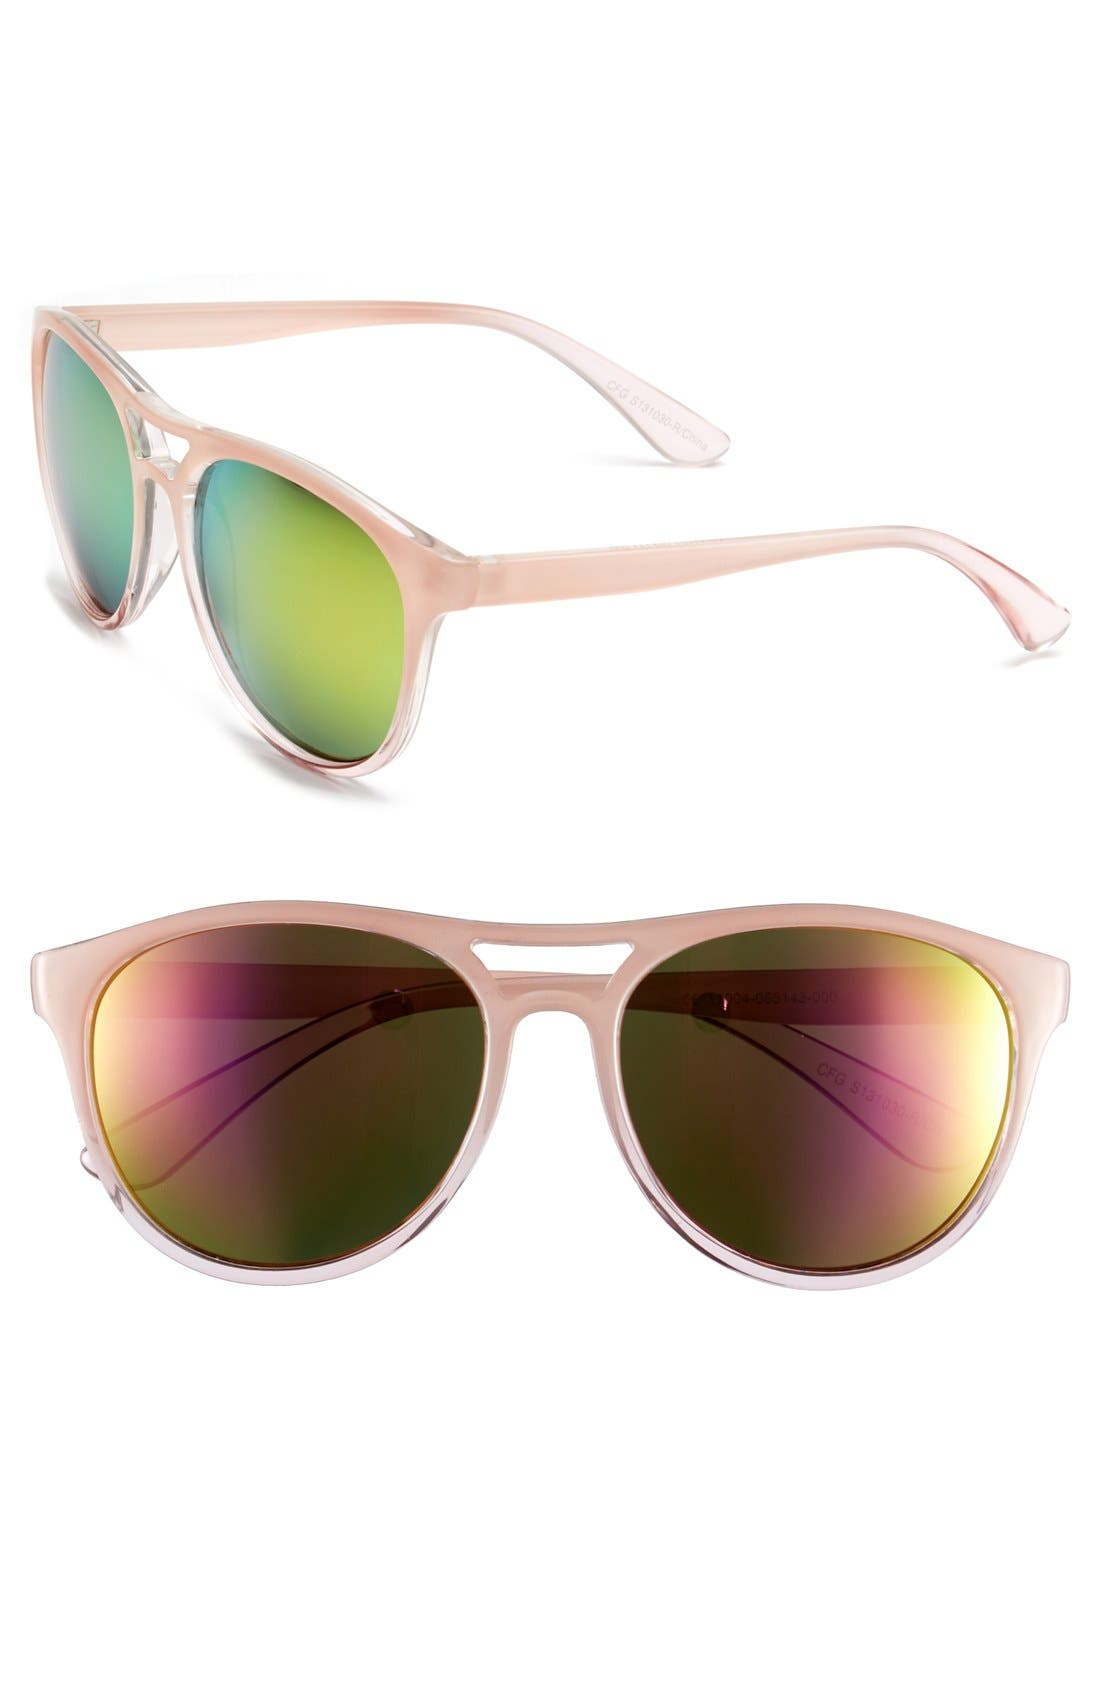 Main Image - BP. 55mm Oversize Retro Sunglasses (Juniors)